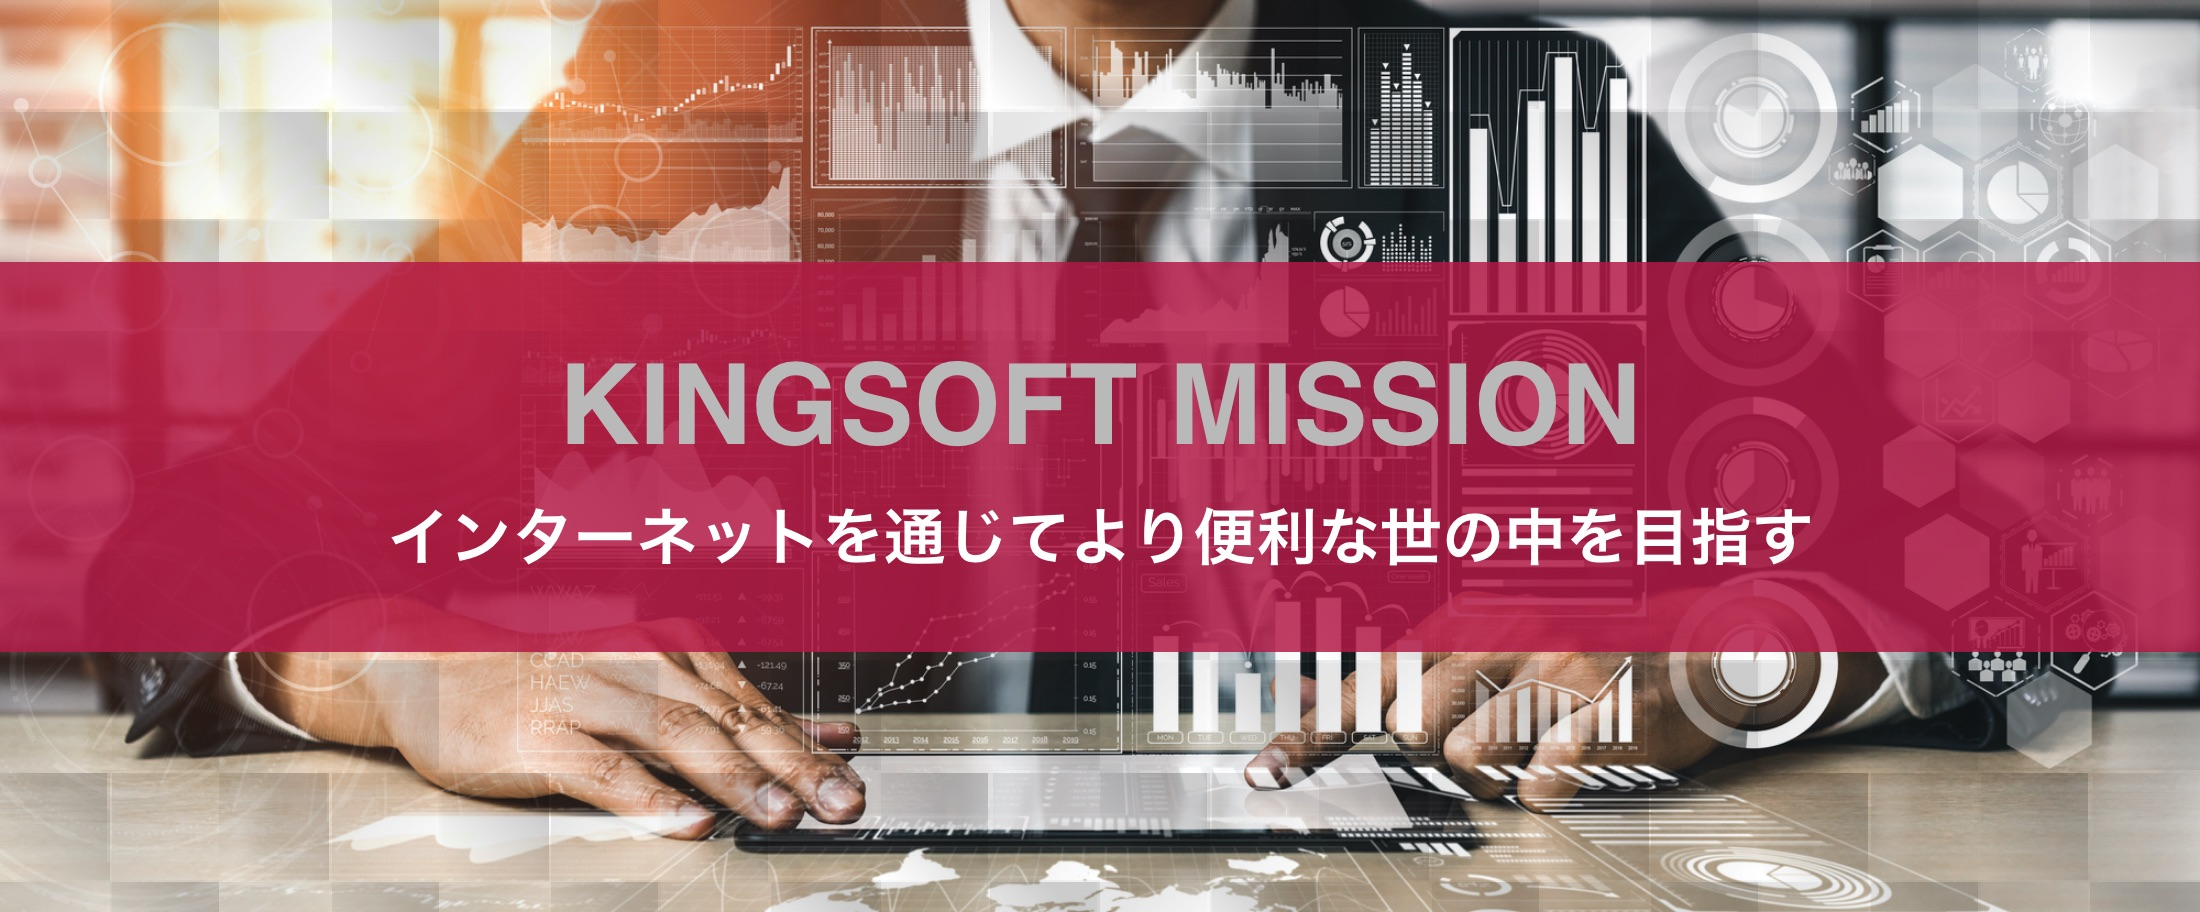 KINGSOFT MISSION